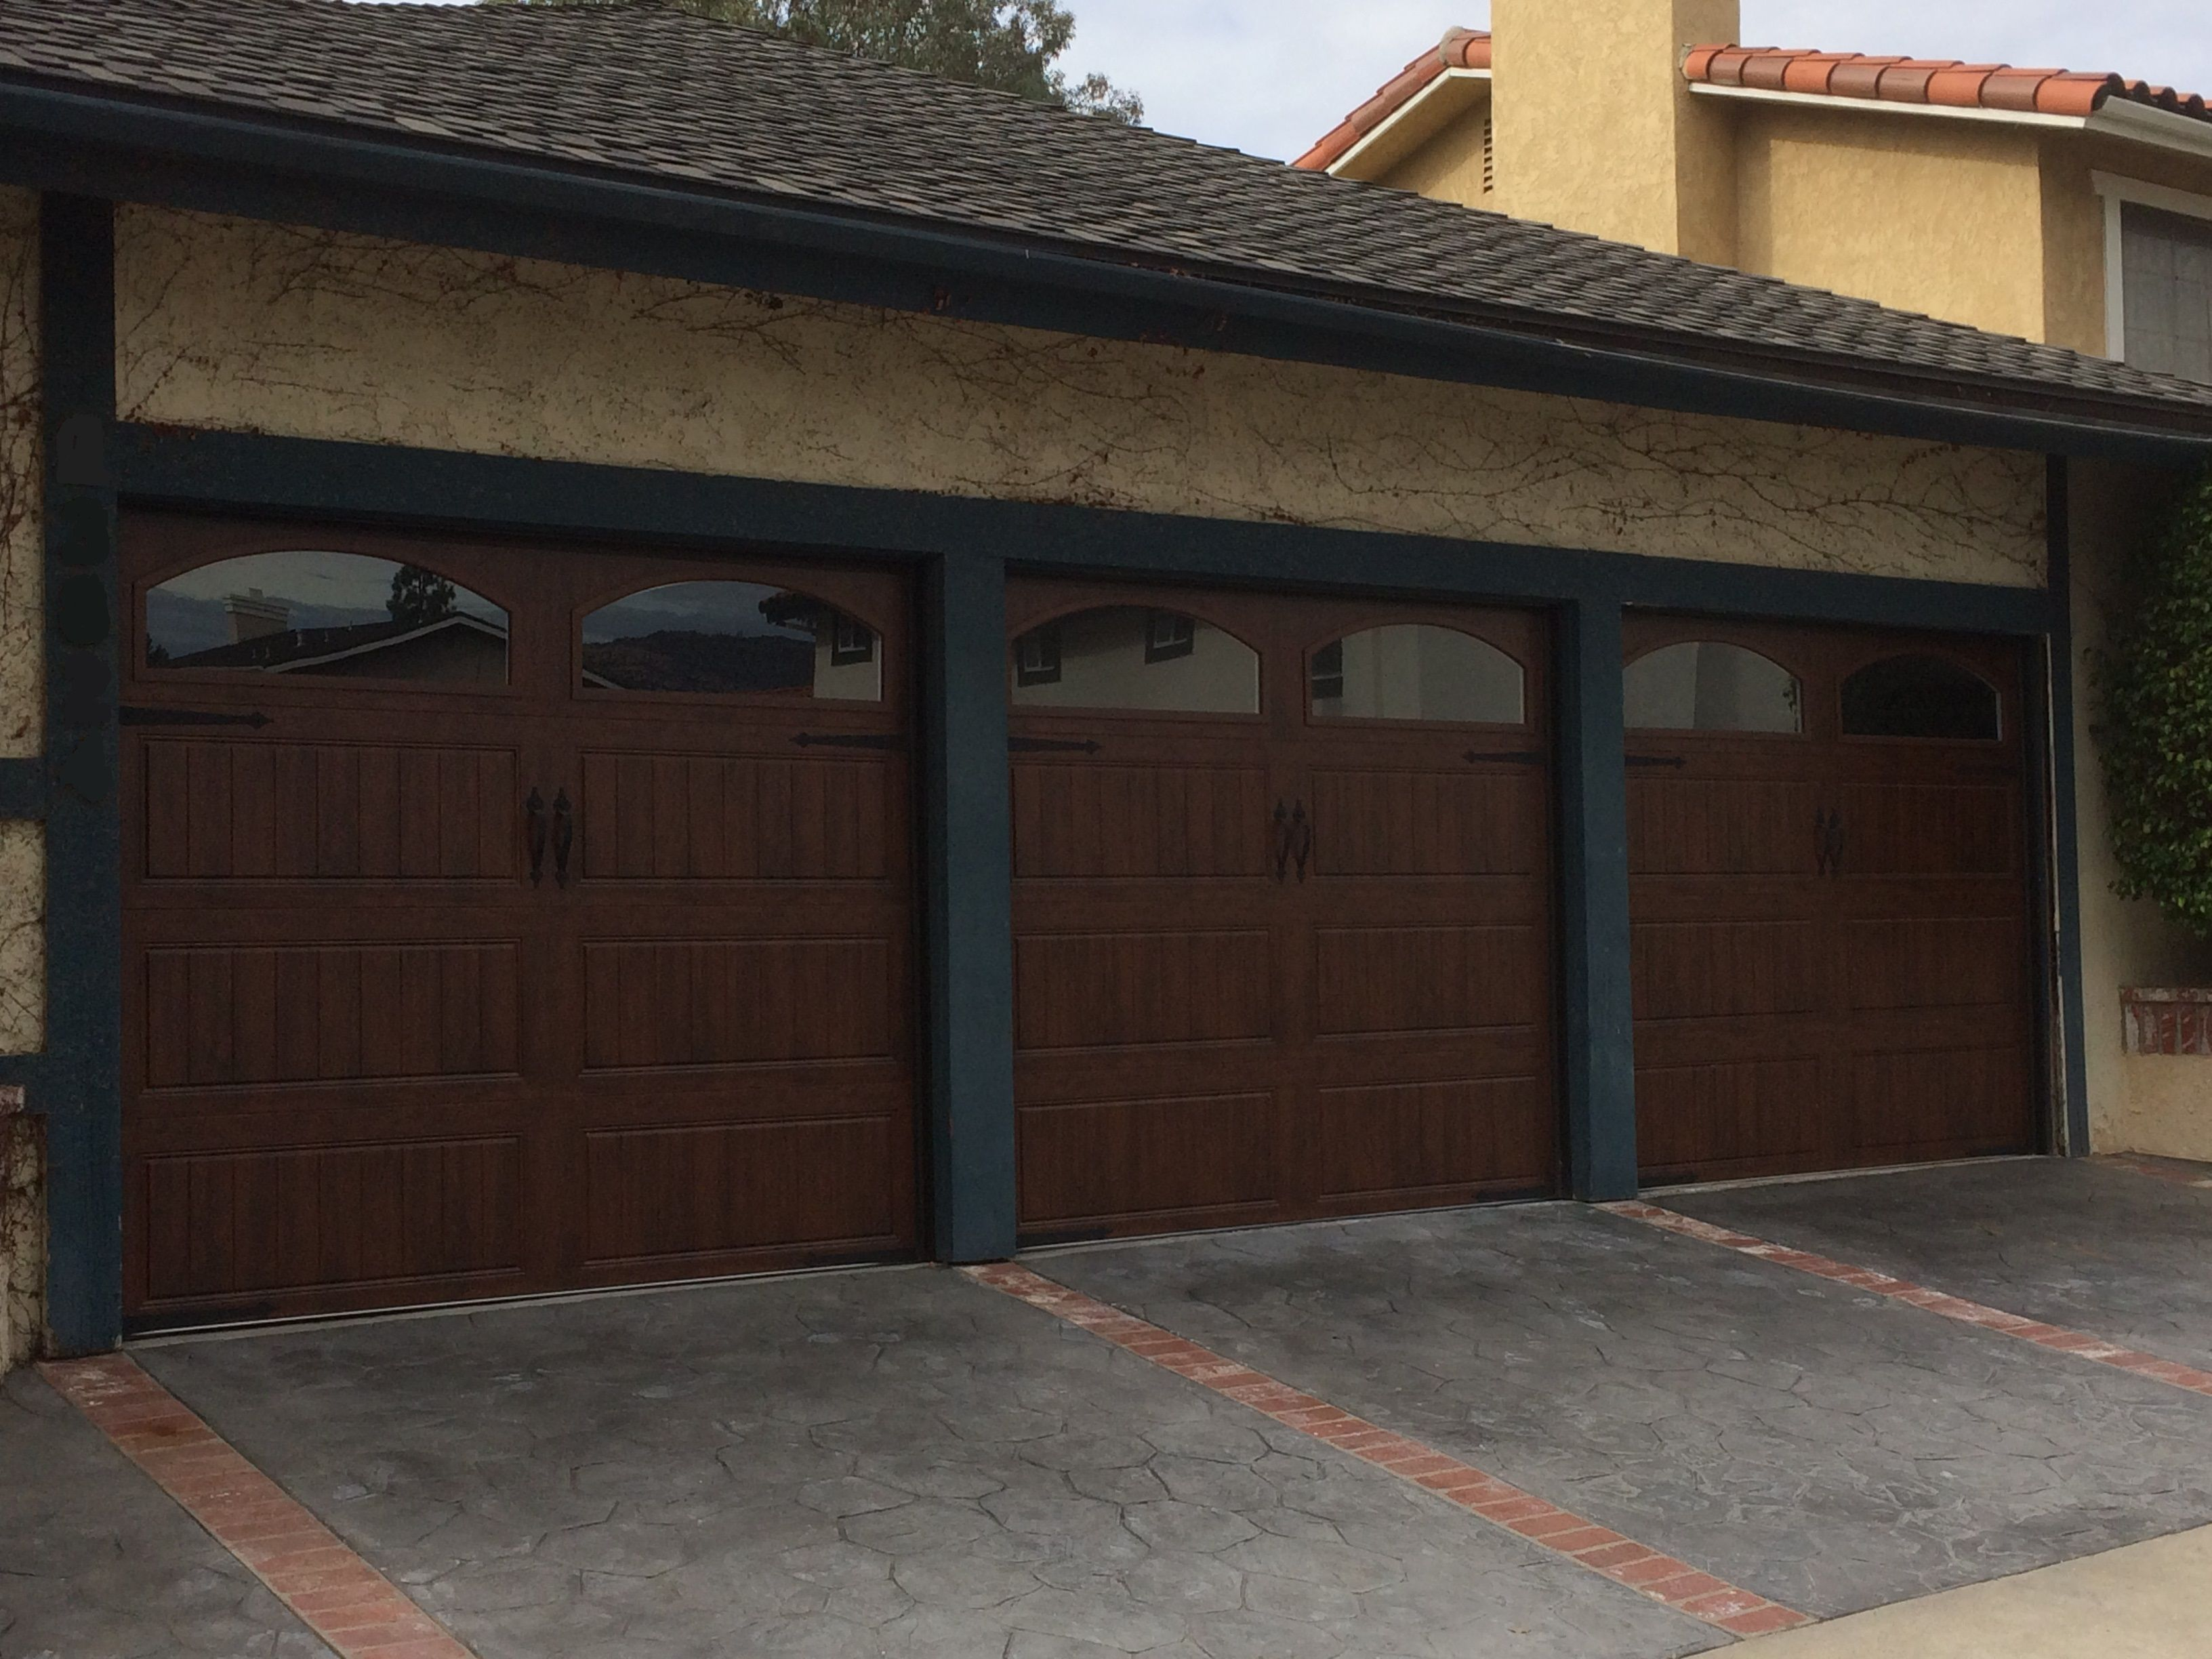 Clopay Gallery Wood Grain Door Los Angeles Ca Photo Credit Agi Dyer Garagedoors Residential Garage Doors Garage Doors Garage Door Spring Repair